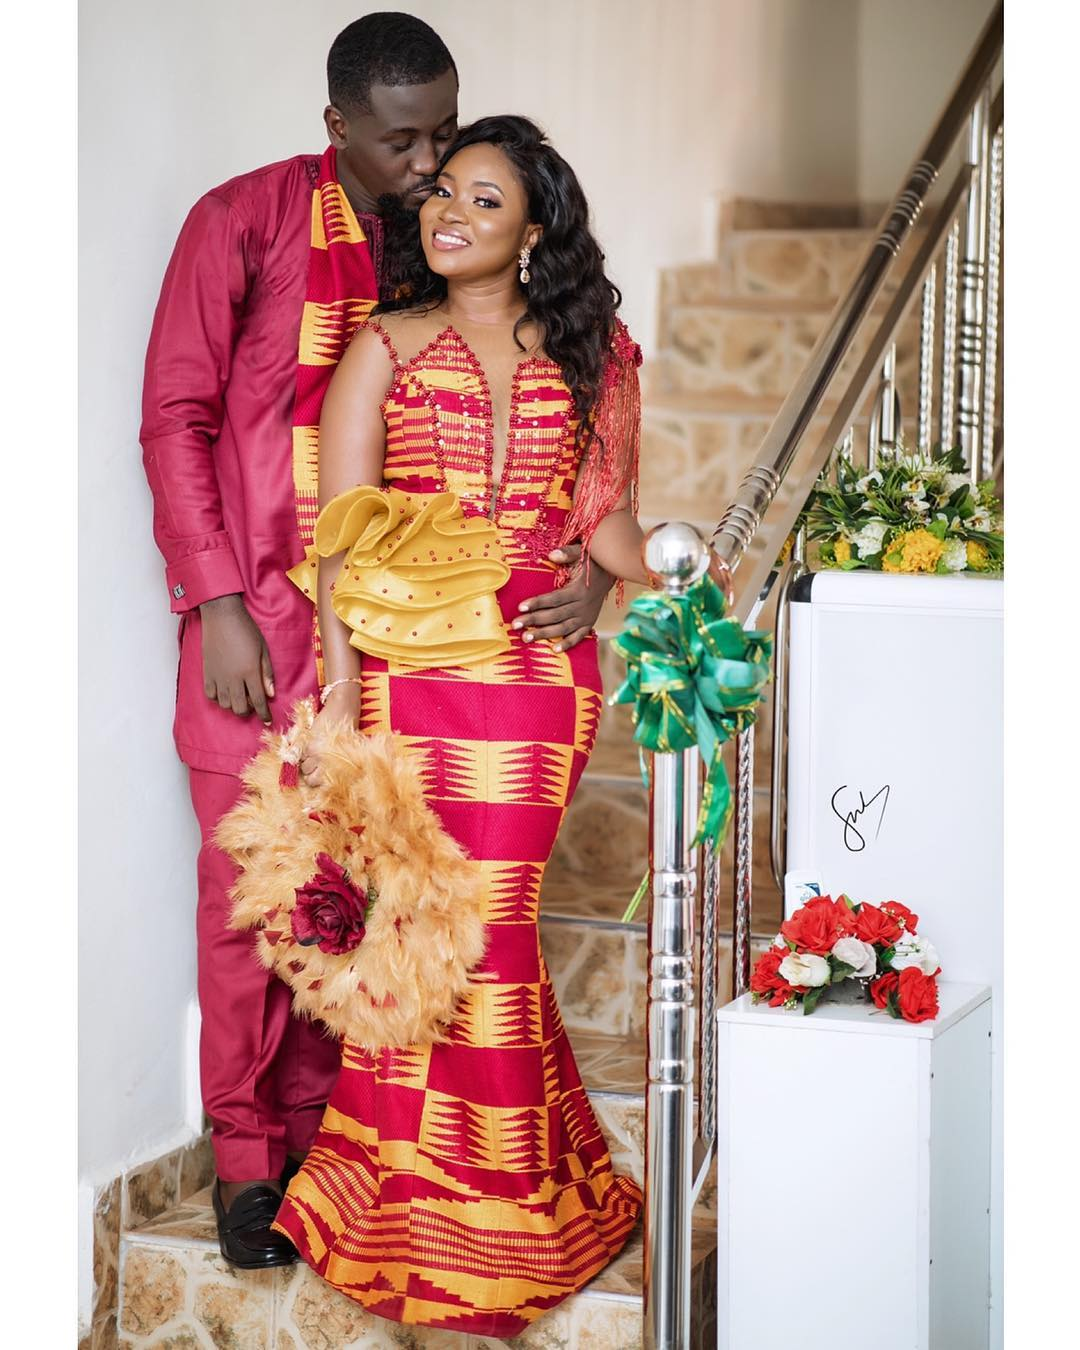 Ghanaian Traditional Wedding: Anabelle Shares All There Is To Know About Her Traditional